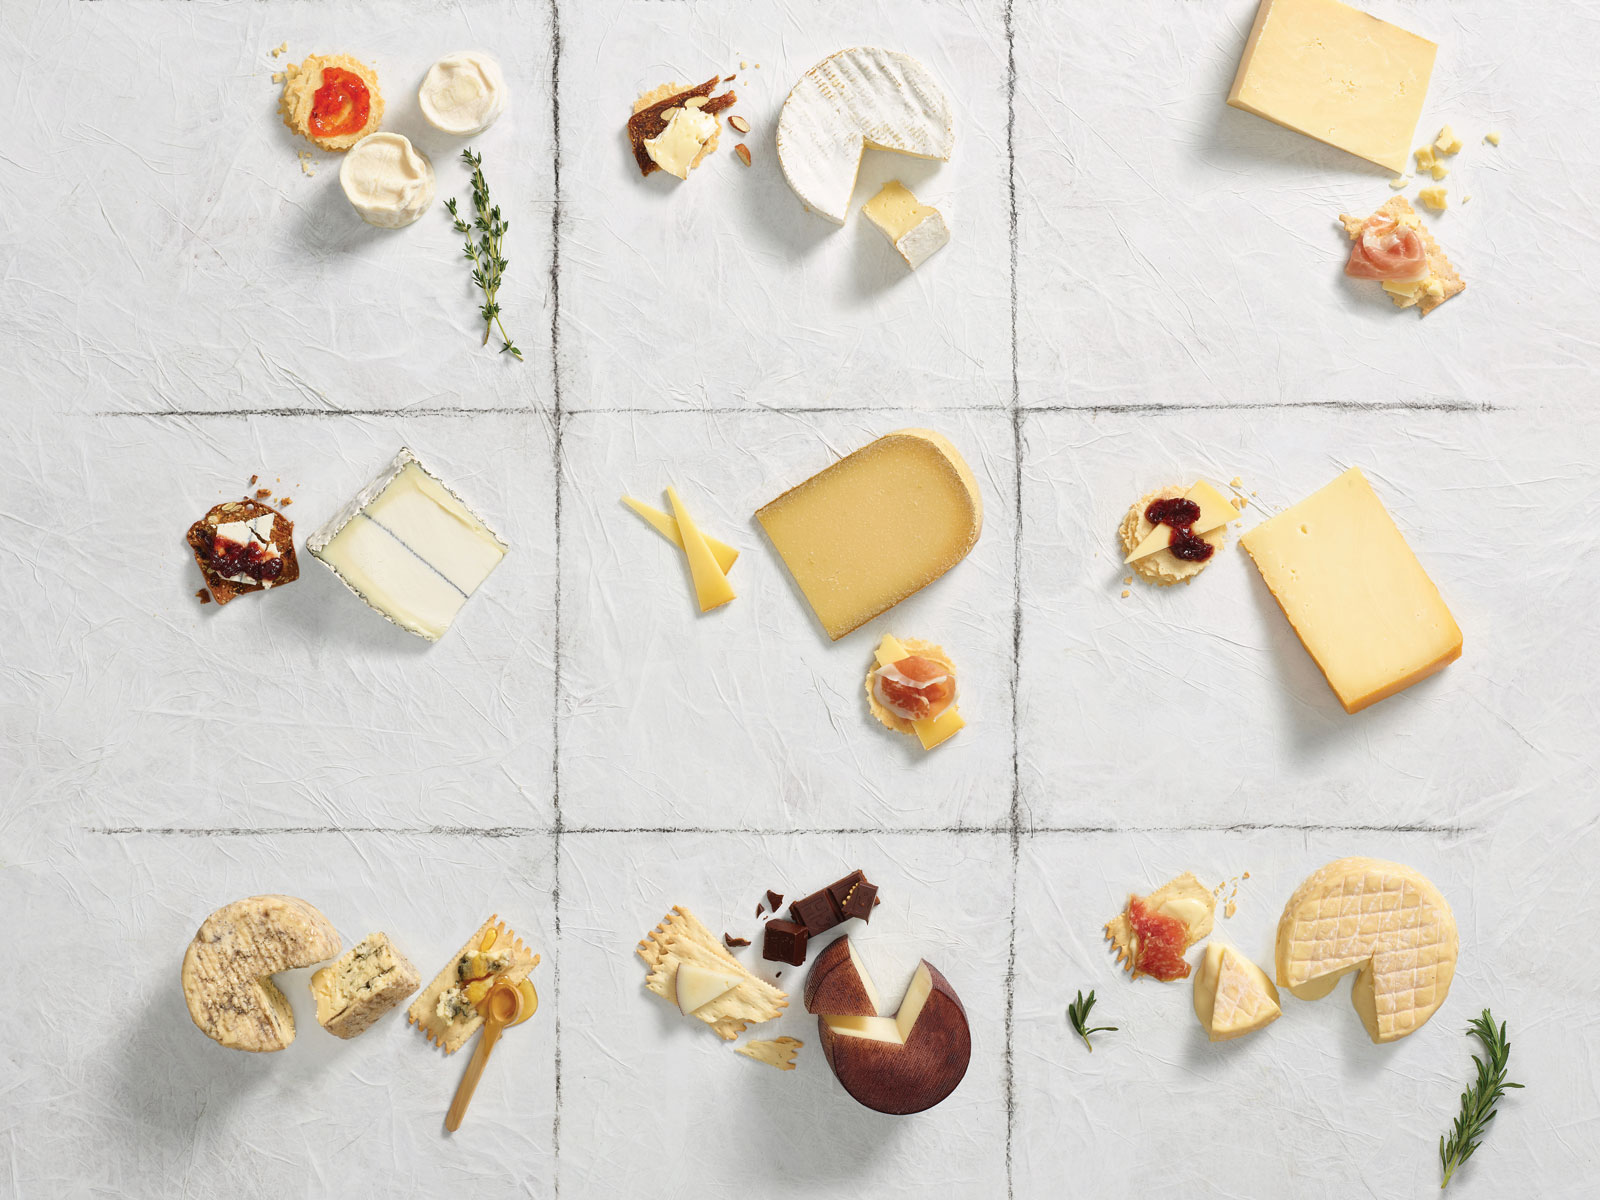 whole-foods-12-days-cheese-FT-BLOG1218.jpg